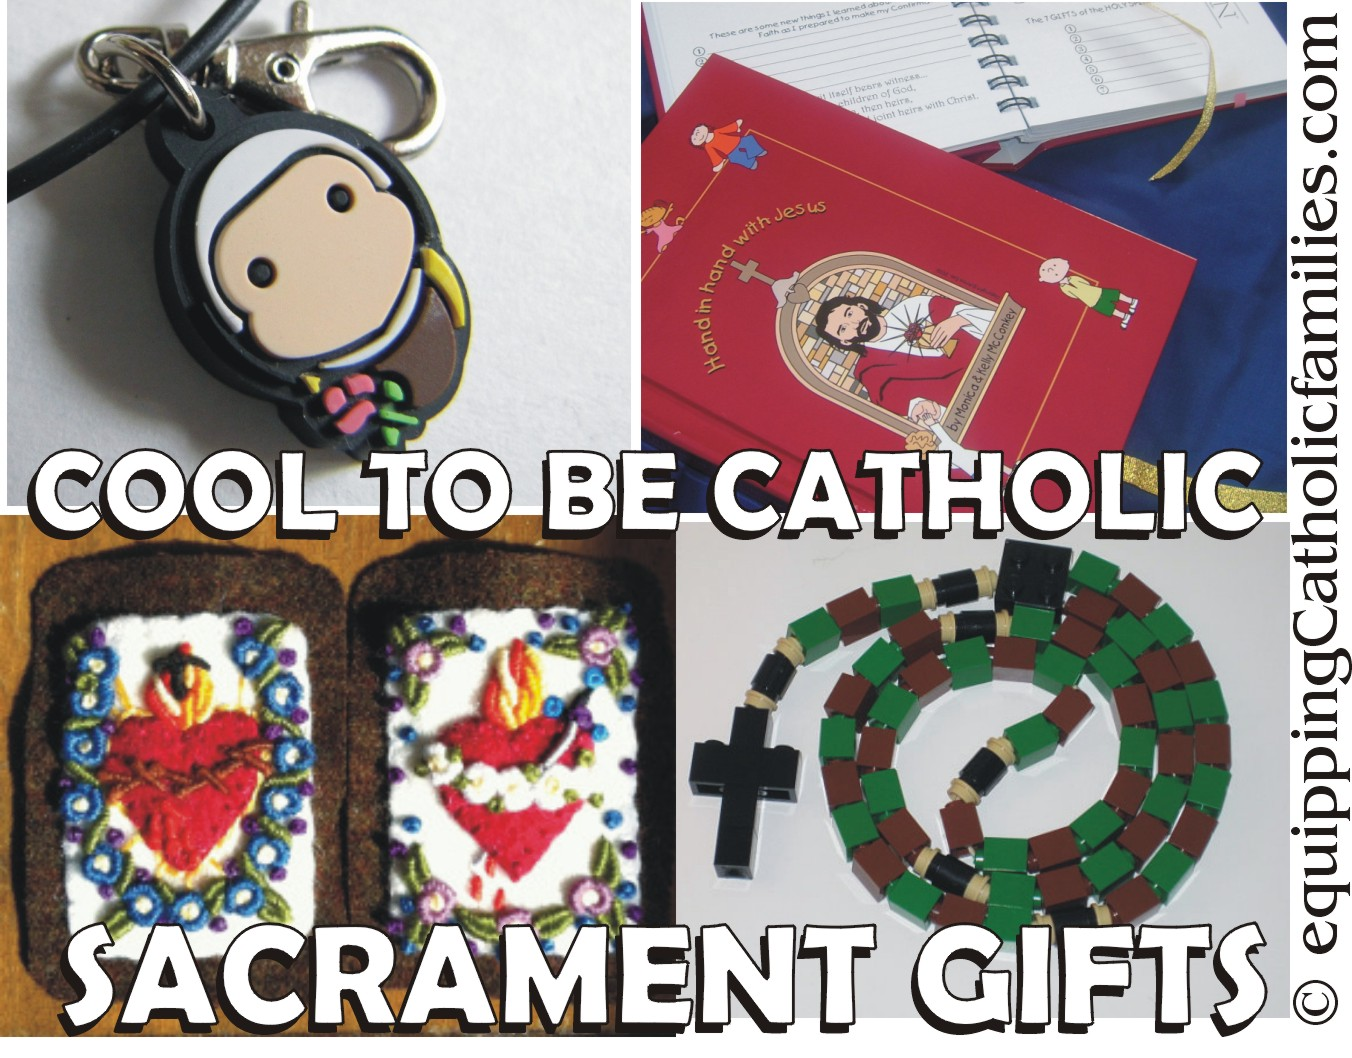 Cool to be Catholic Sacrament Gifts!